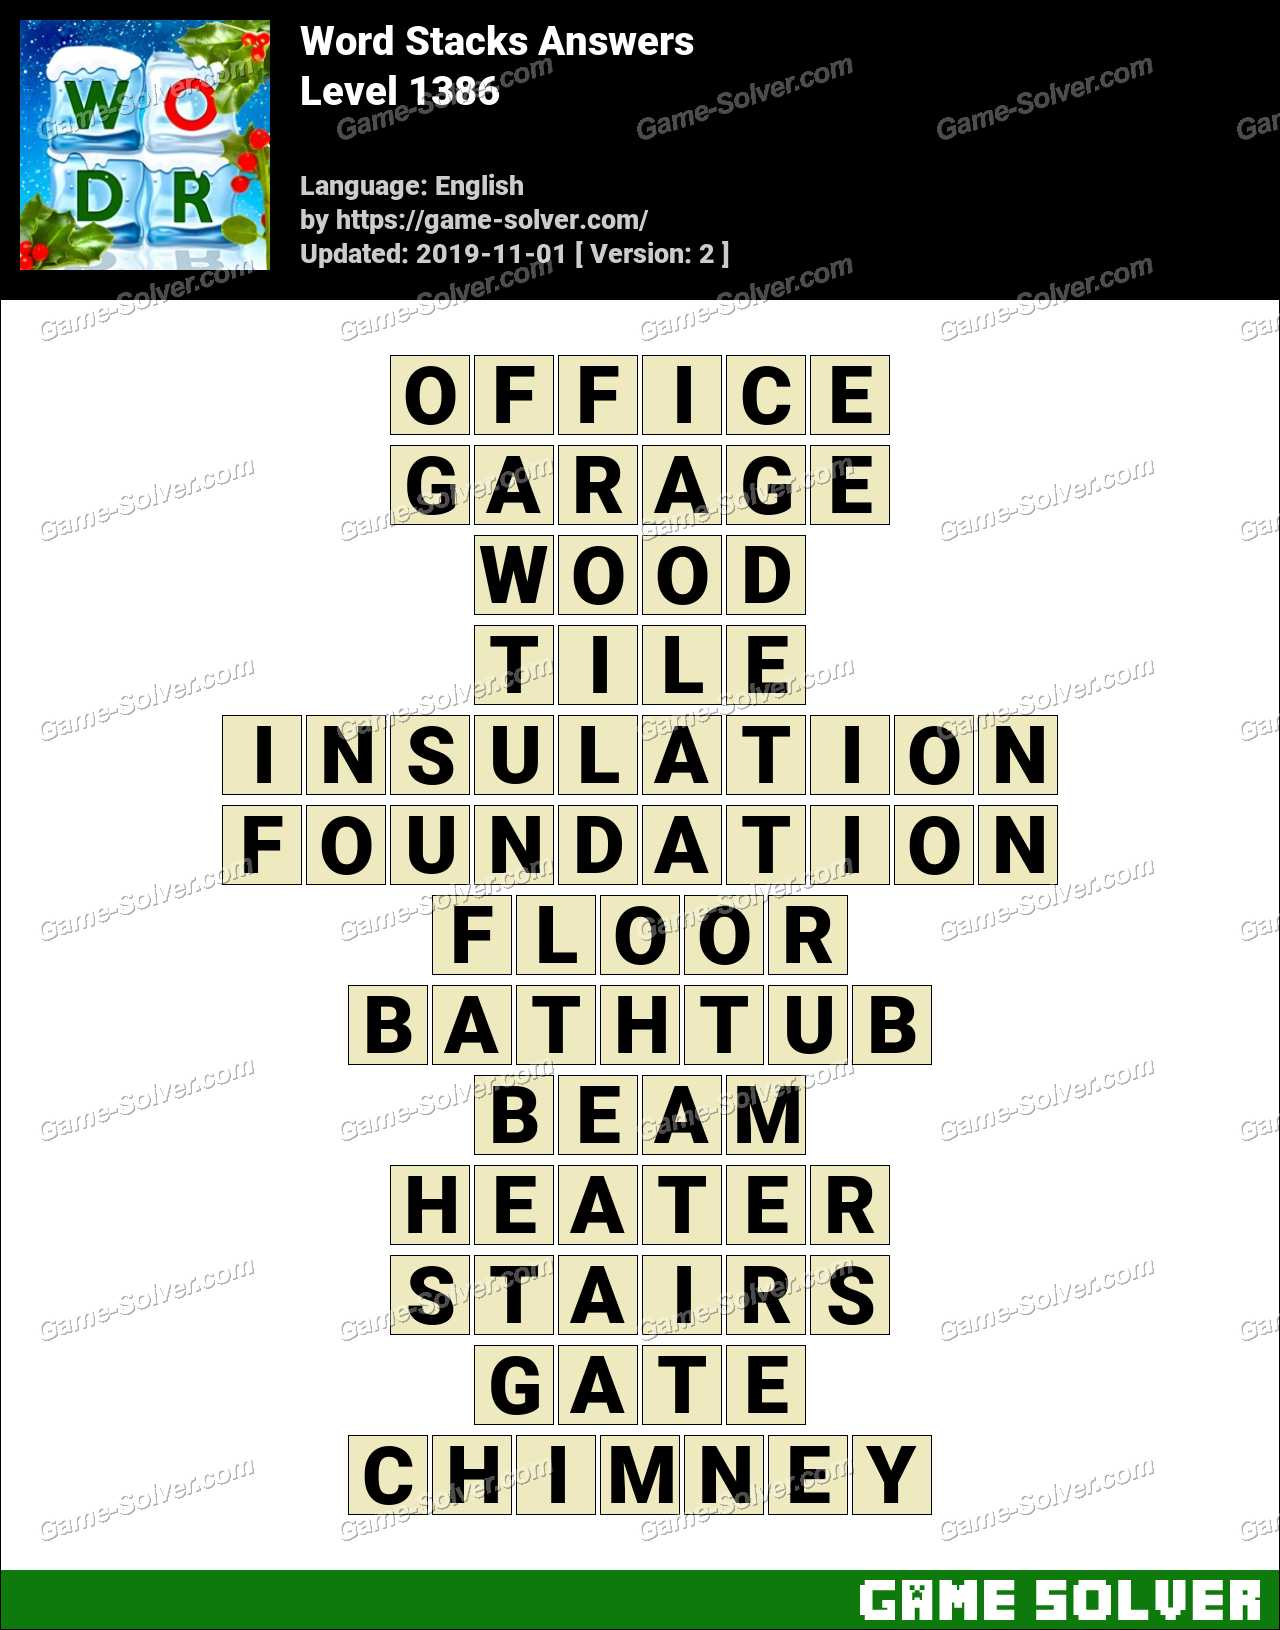 Word Stacks Level 1386 Answers